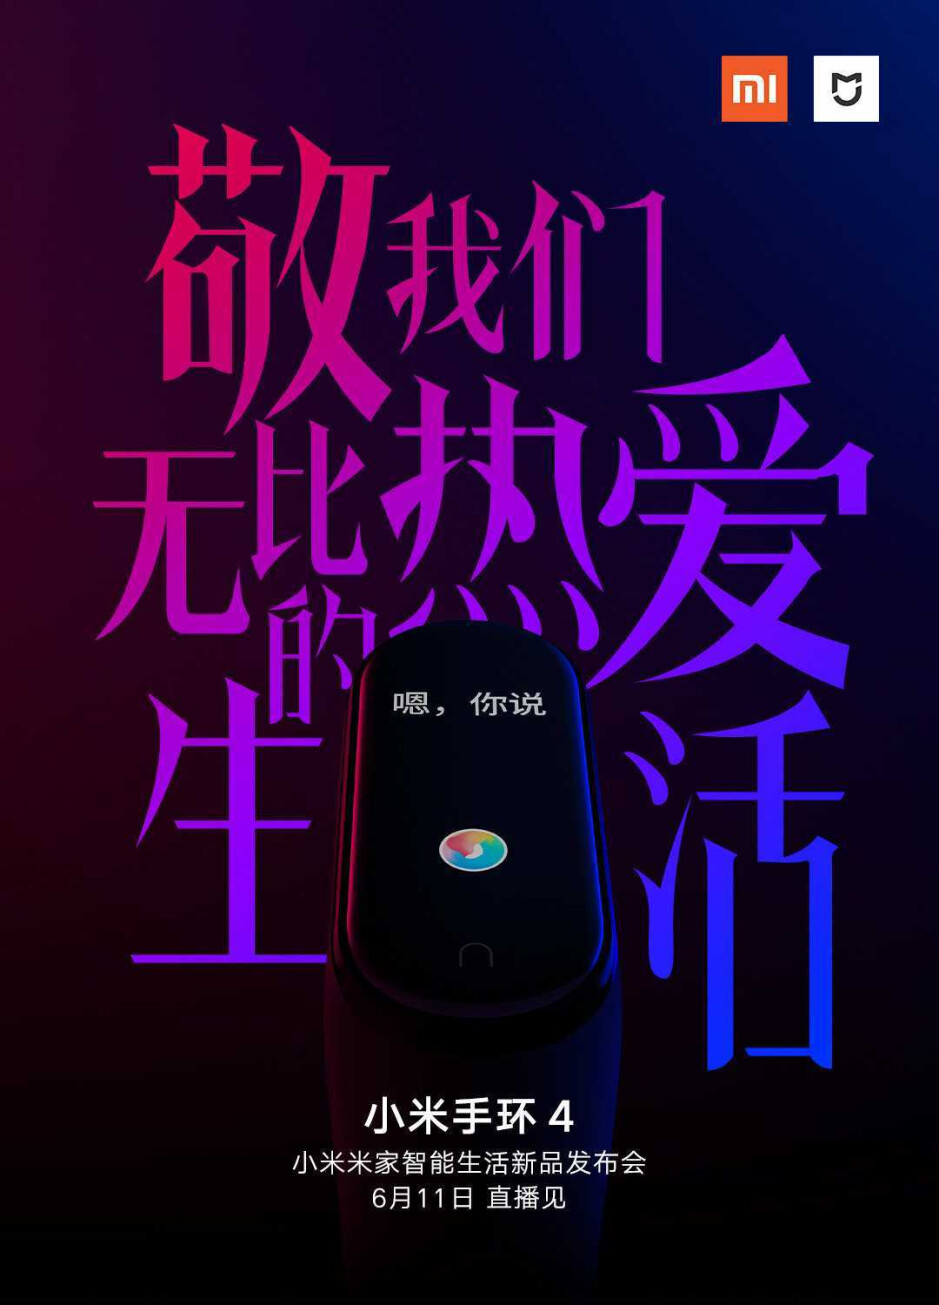 Poster shows the new color screen for the Mi Band 4 and the June 11th unveiling date - The sequel to one of the most popular wearables will be unveiled next week